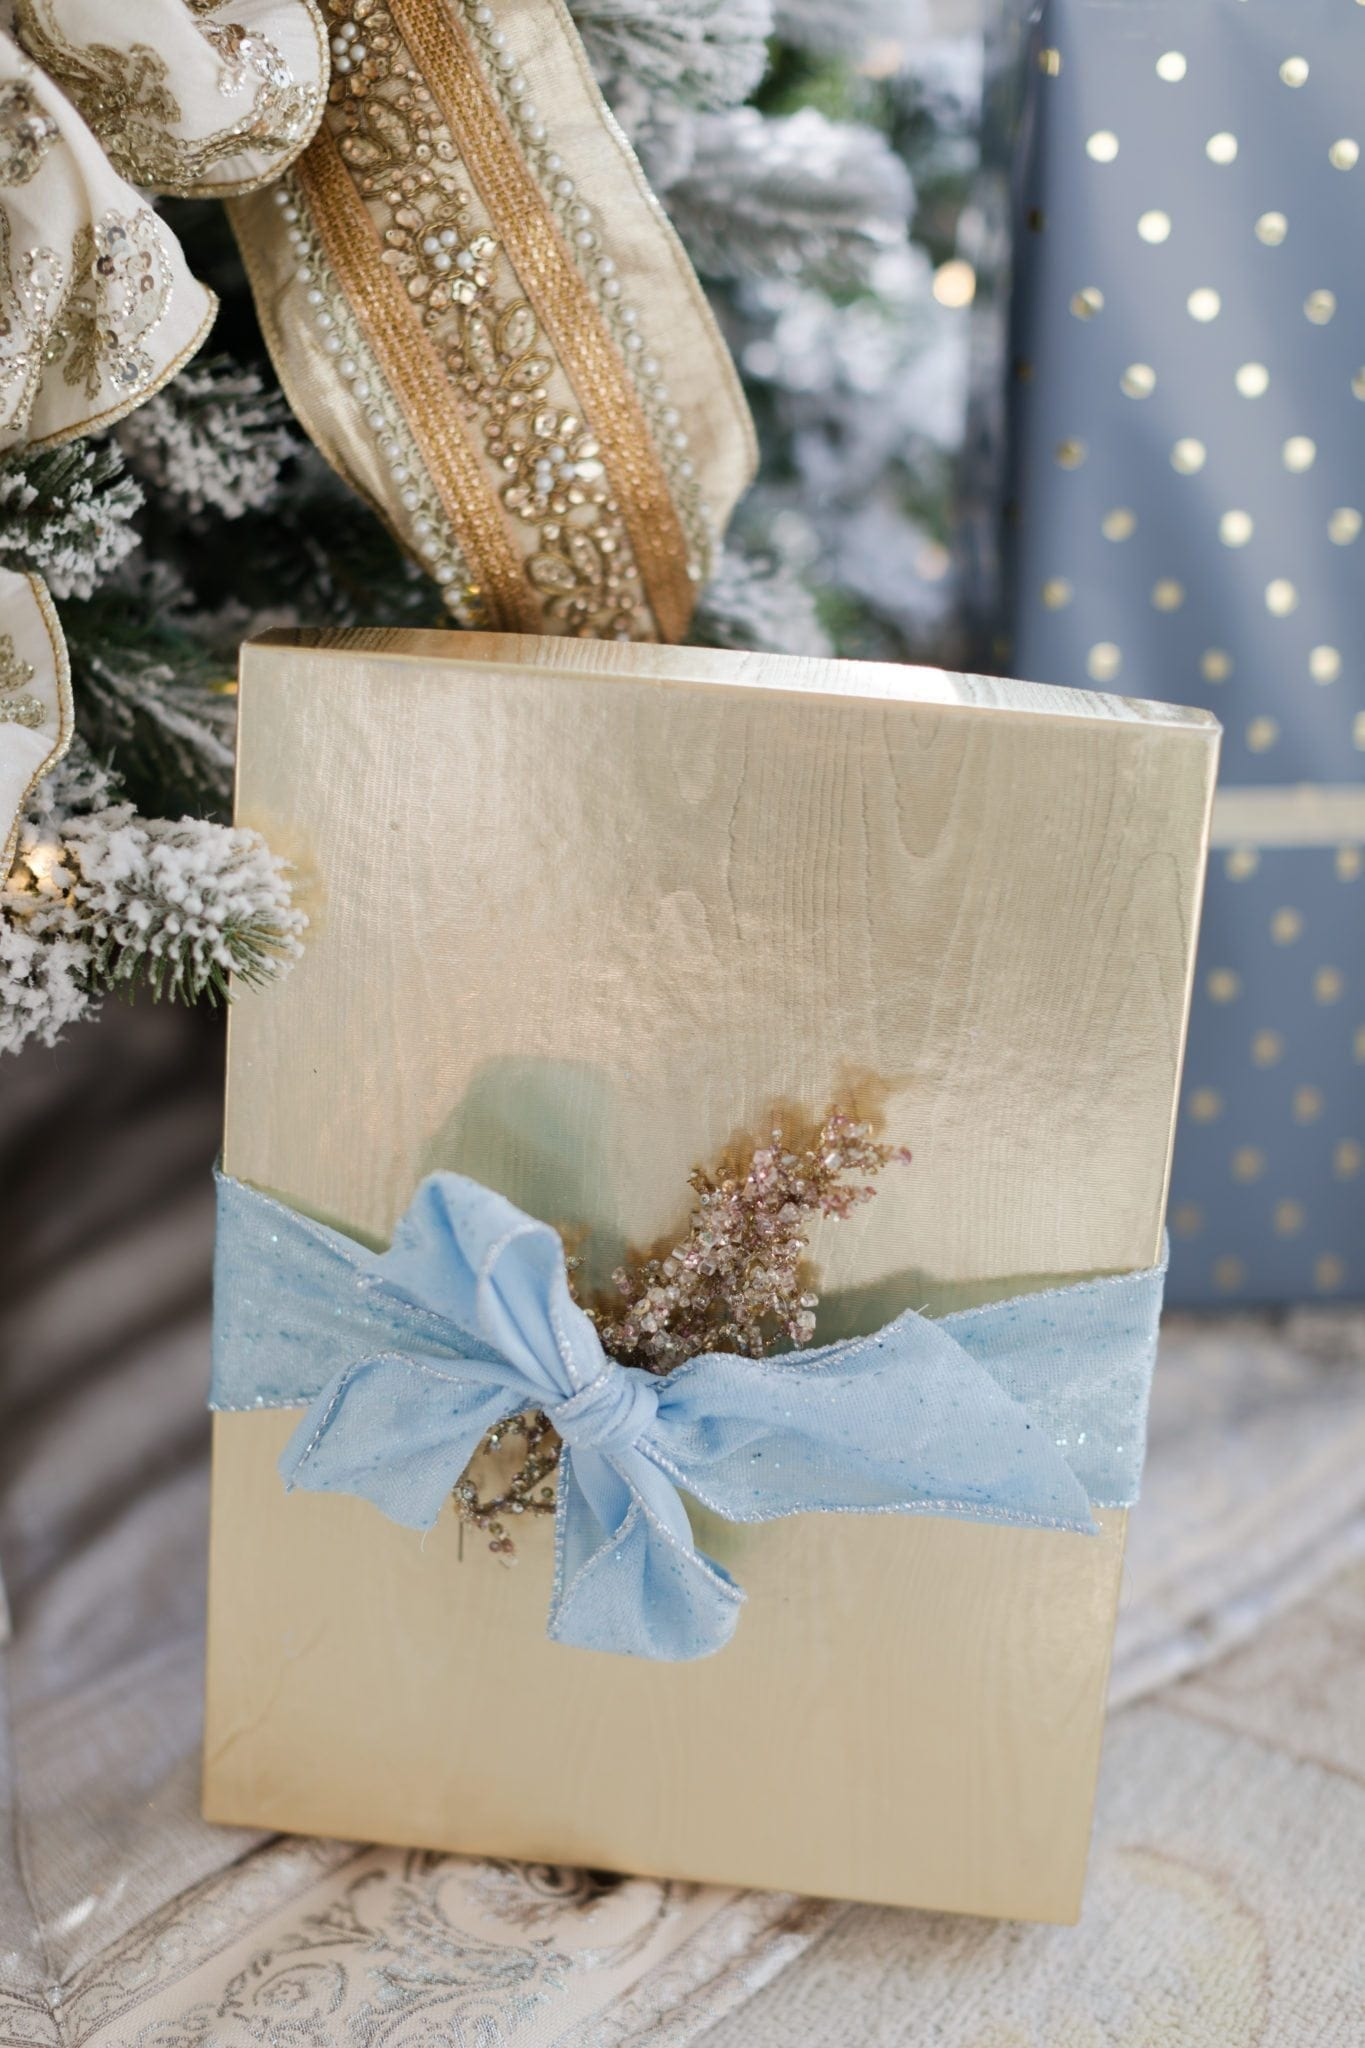 Gold box with light blue ribbon.